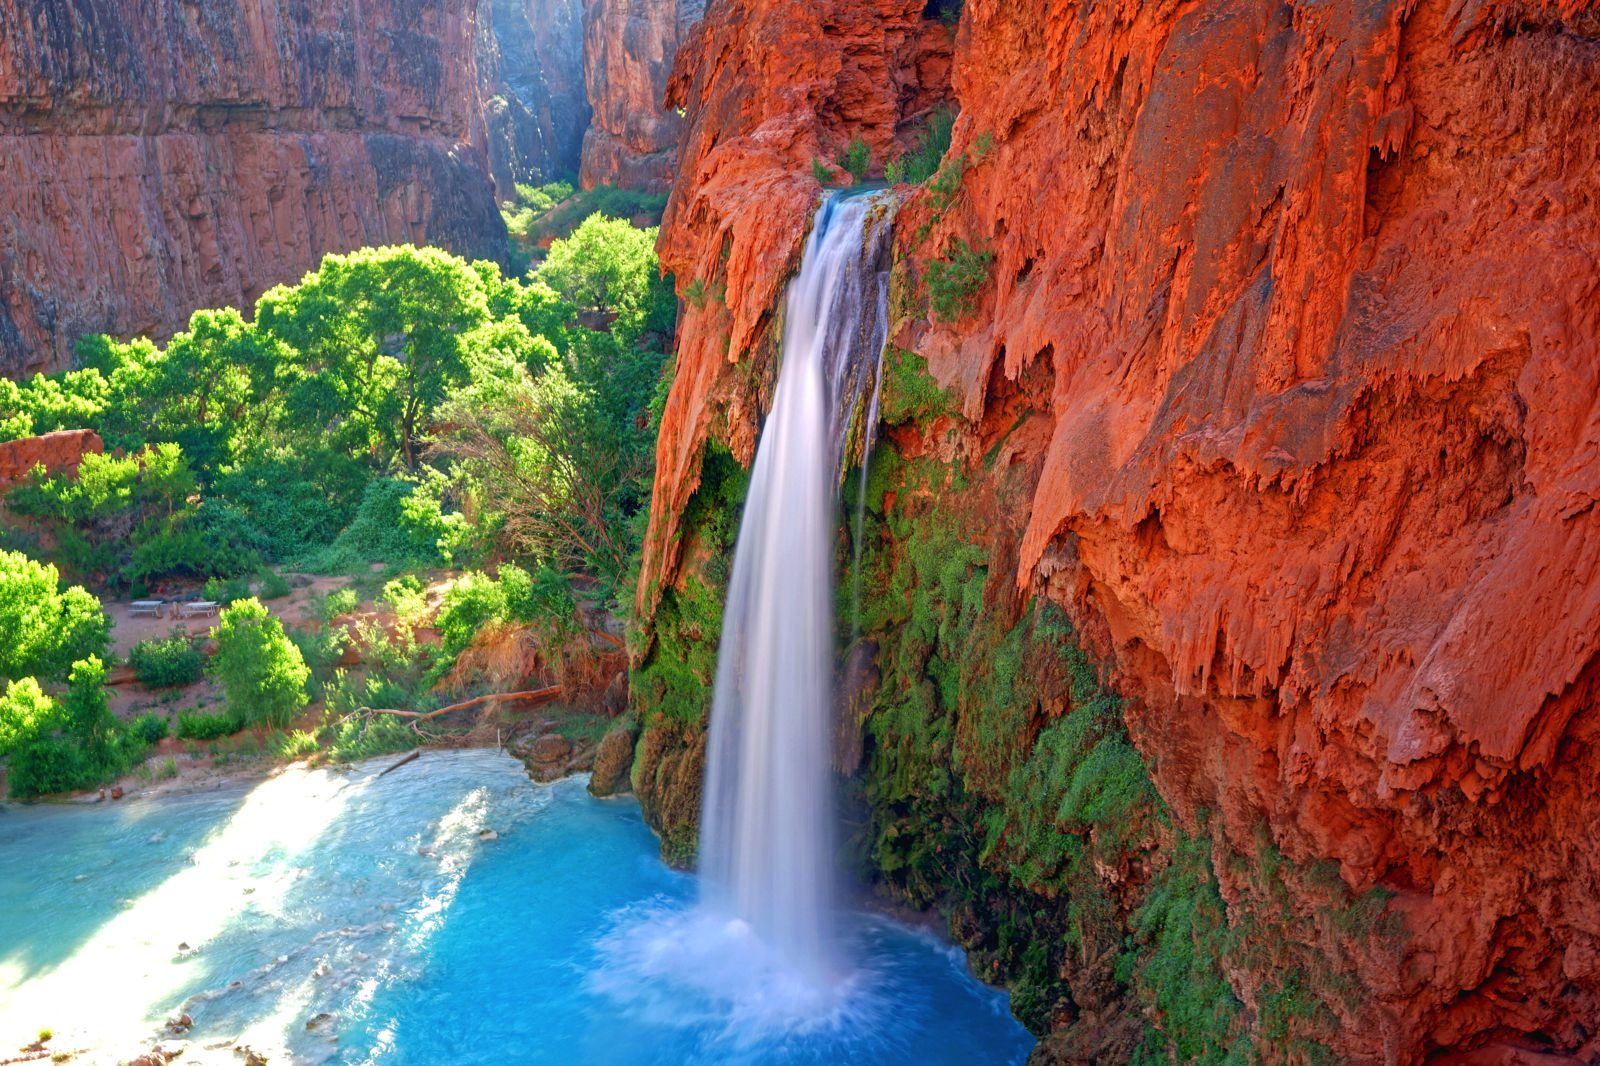 10 amazing waterfalls around the world you need to see hand